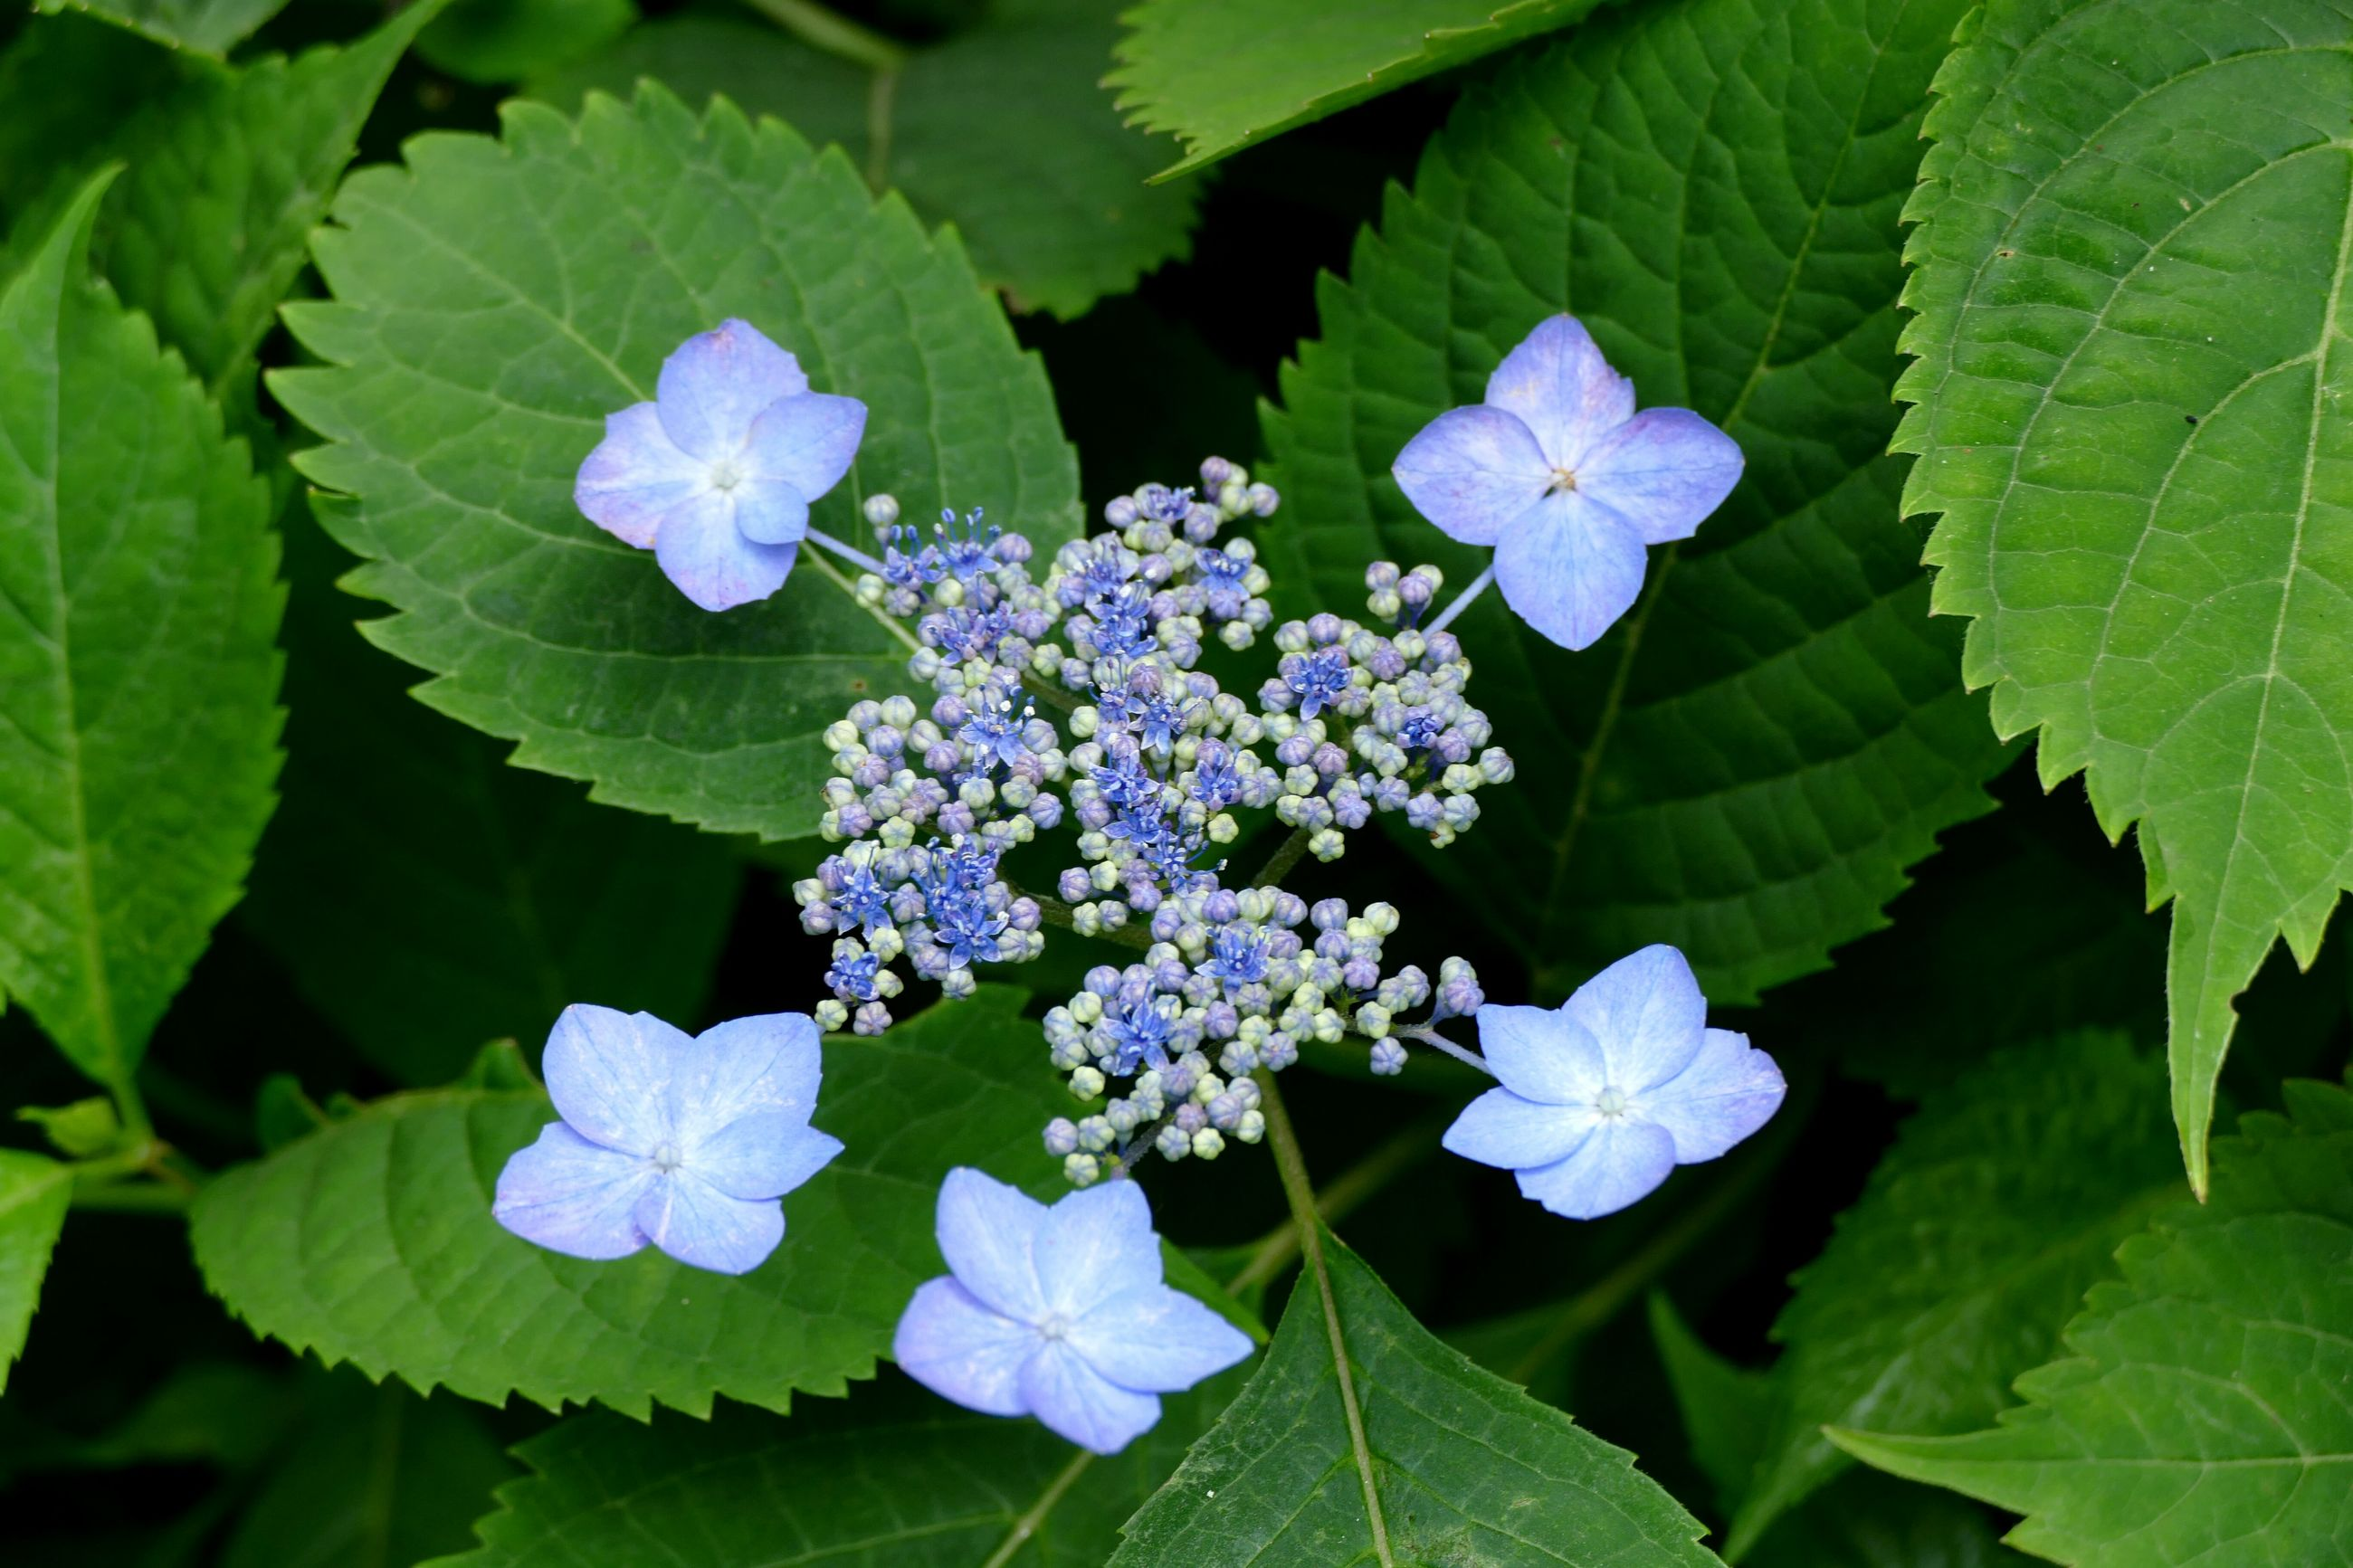 leaf, flower, freshness, growth, purple, green color, fragility, beauty in nature, plant, petal, nature, close-up, flower head, blooming, blue, high angle view, hydrangea, green, outdoors, no people